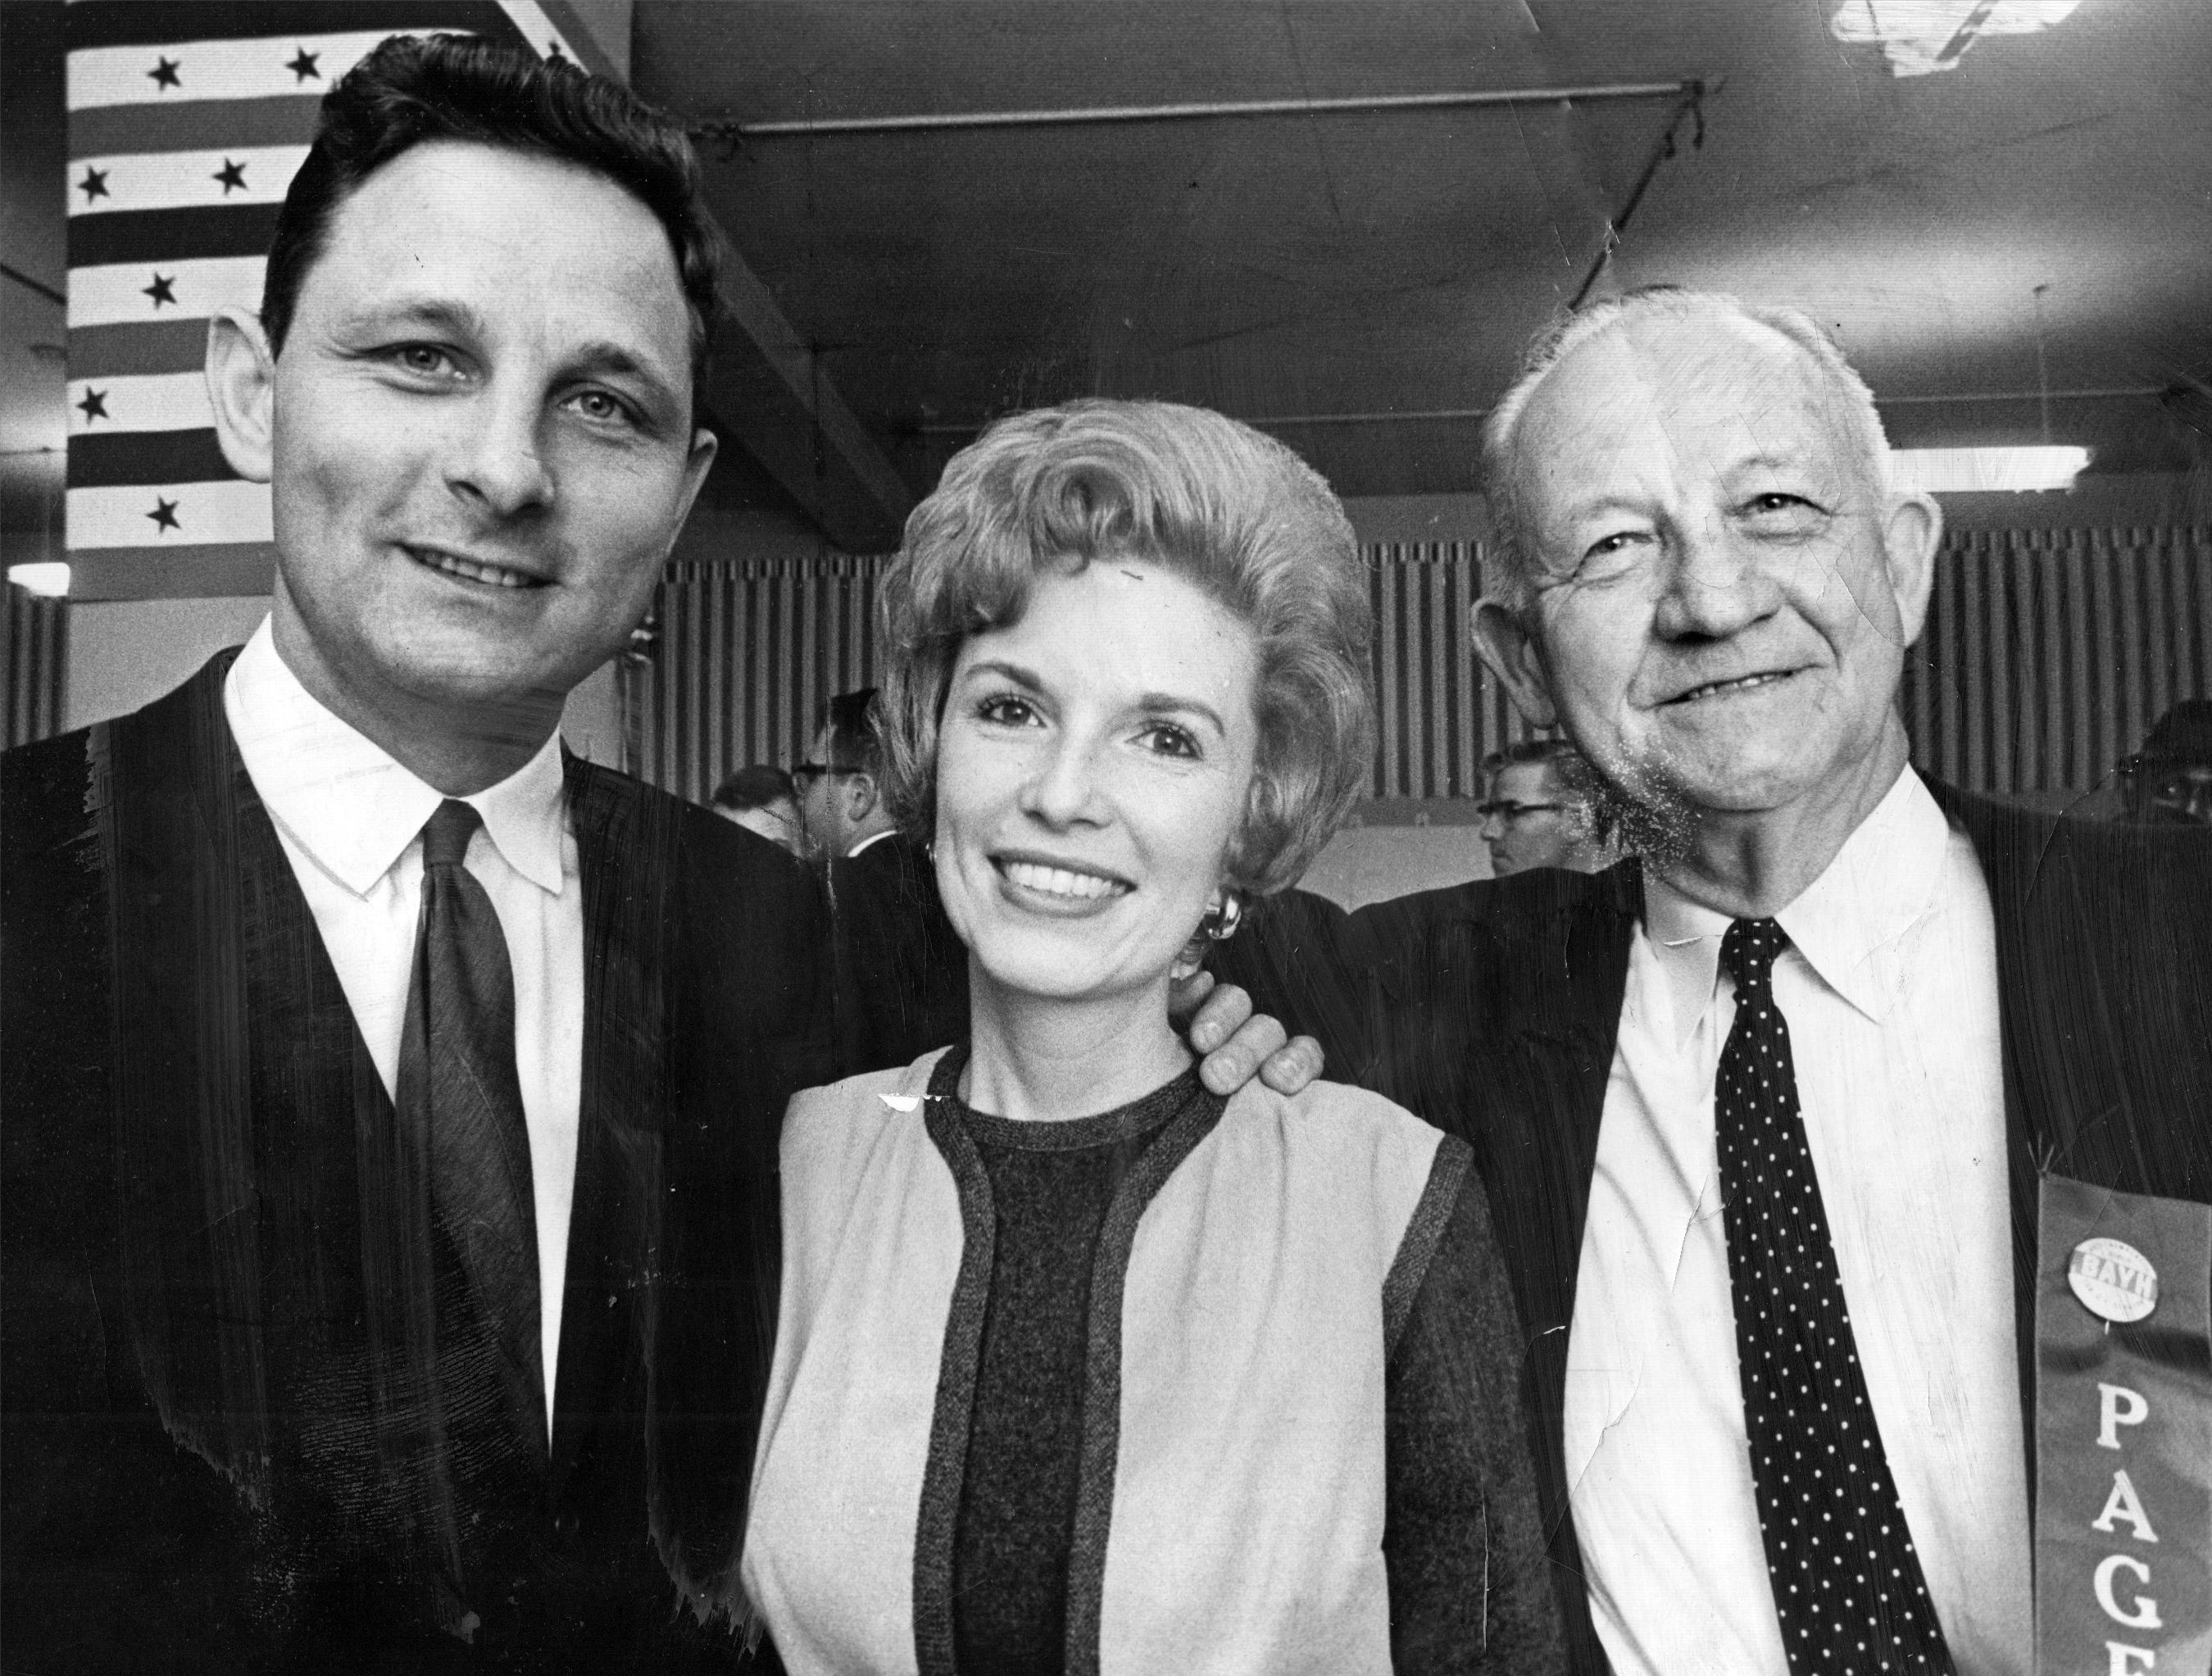 Birch Bayh Jr., left Democratic candidate for US senator, at campaign headquarters with his wife, Marvella, and his father Birch E. Bayh Sr on Nov. 7, 1962.